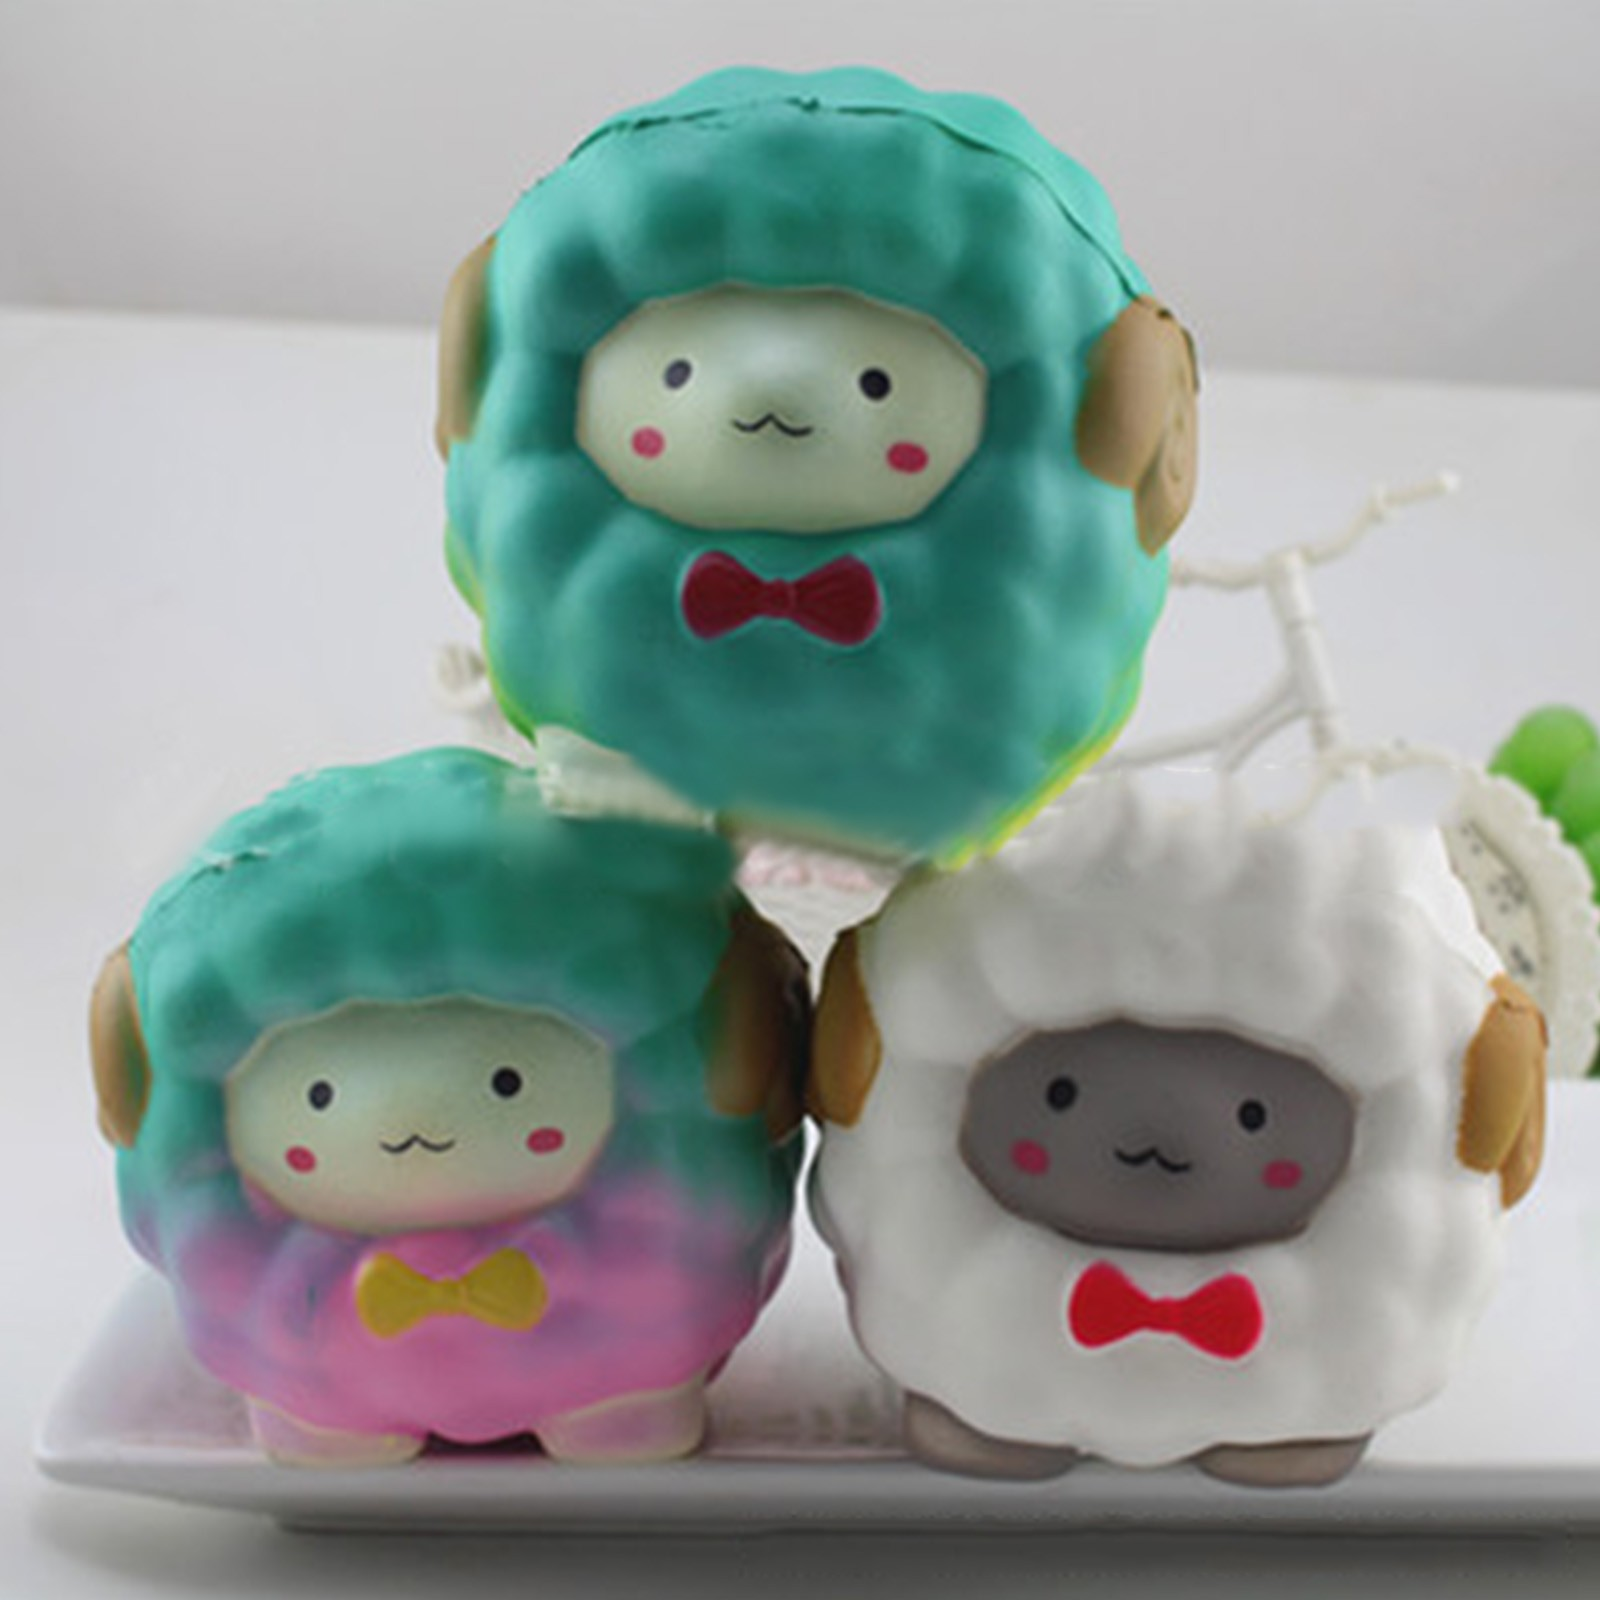 Adorable Llamas Alpacas Slow Rising Squeezed Toys Fruit Scented Squeezed Stress Relief Toys Decompression Toy For Children img5